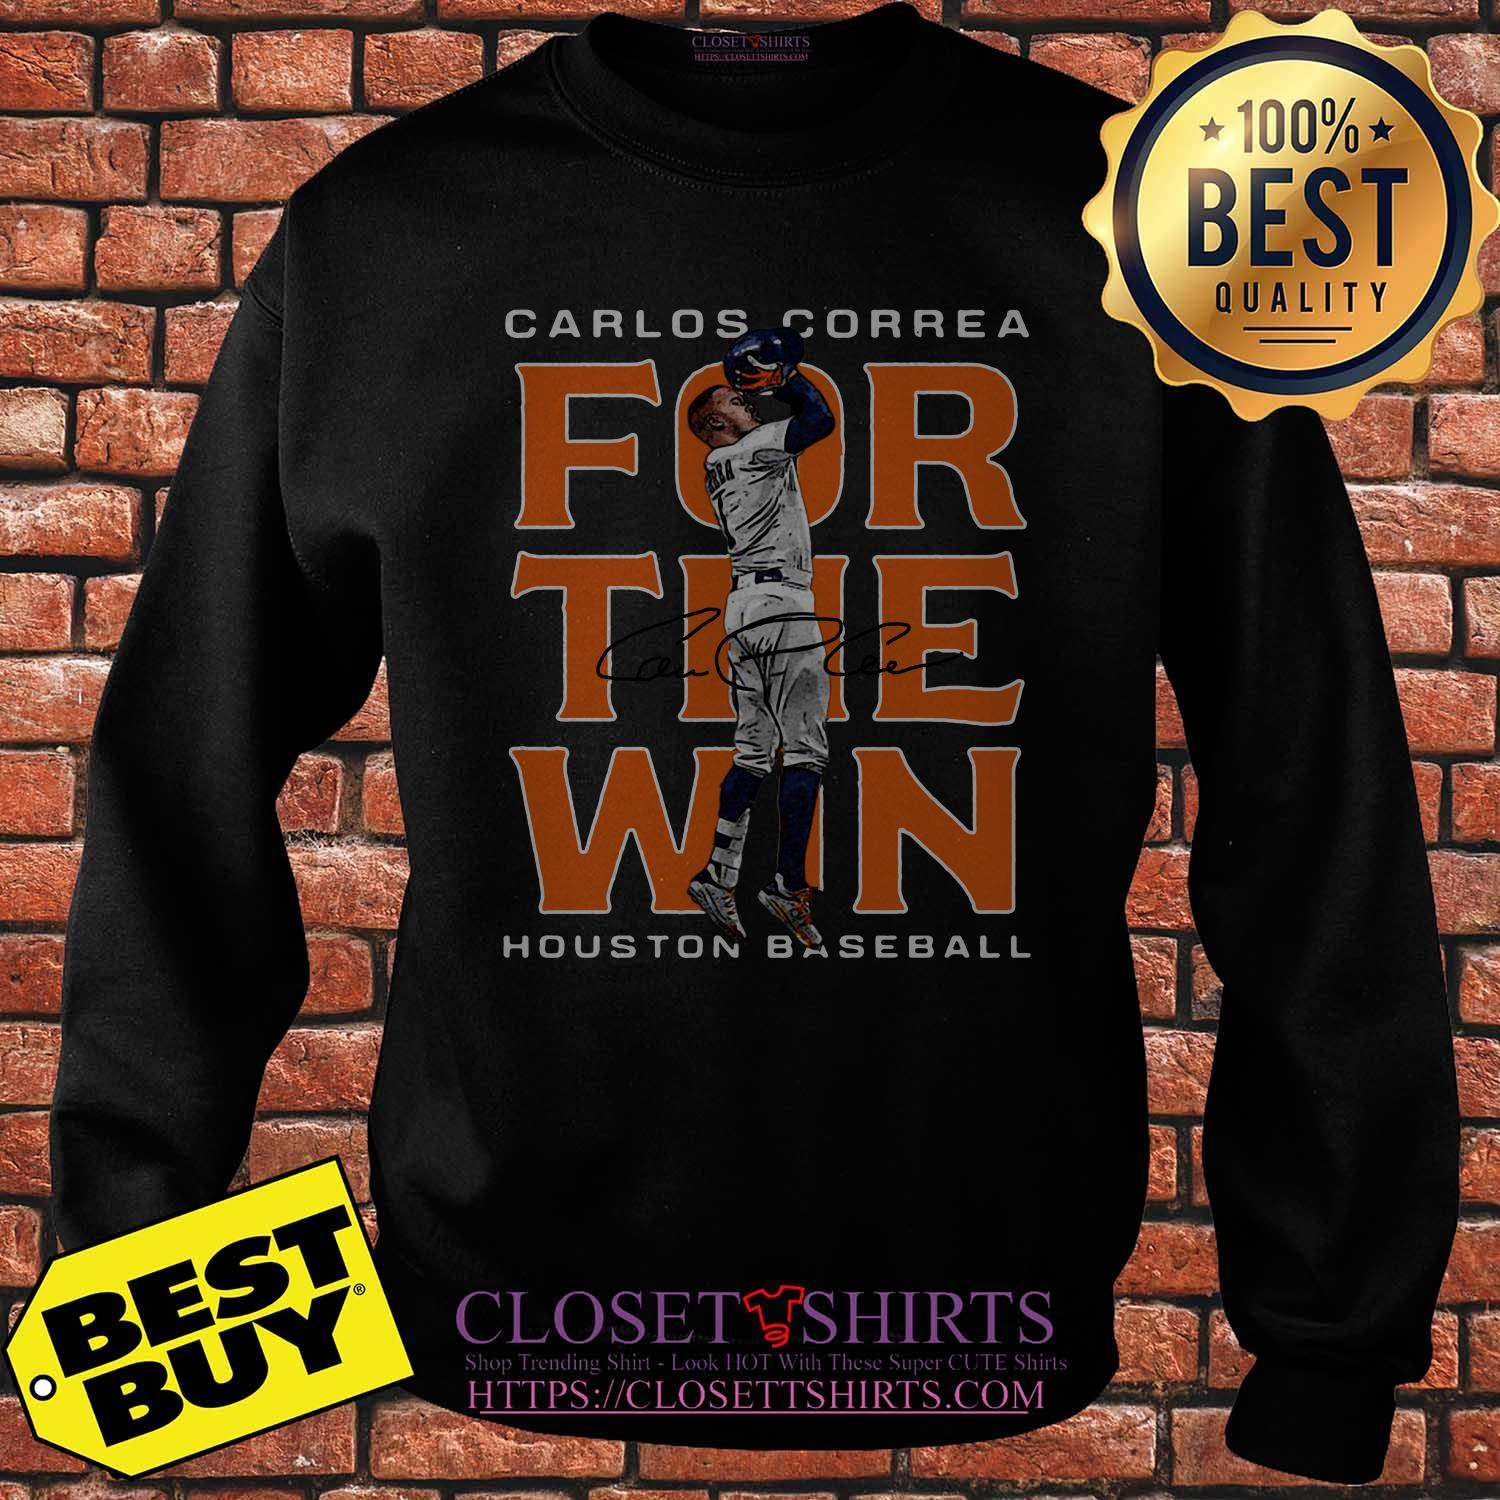 Carlos Correa Houston Astros Baseball Signature Sweatshirt